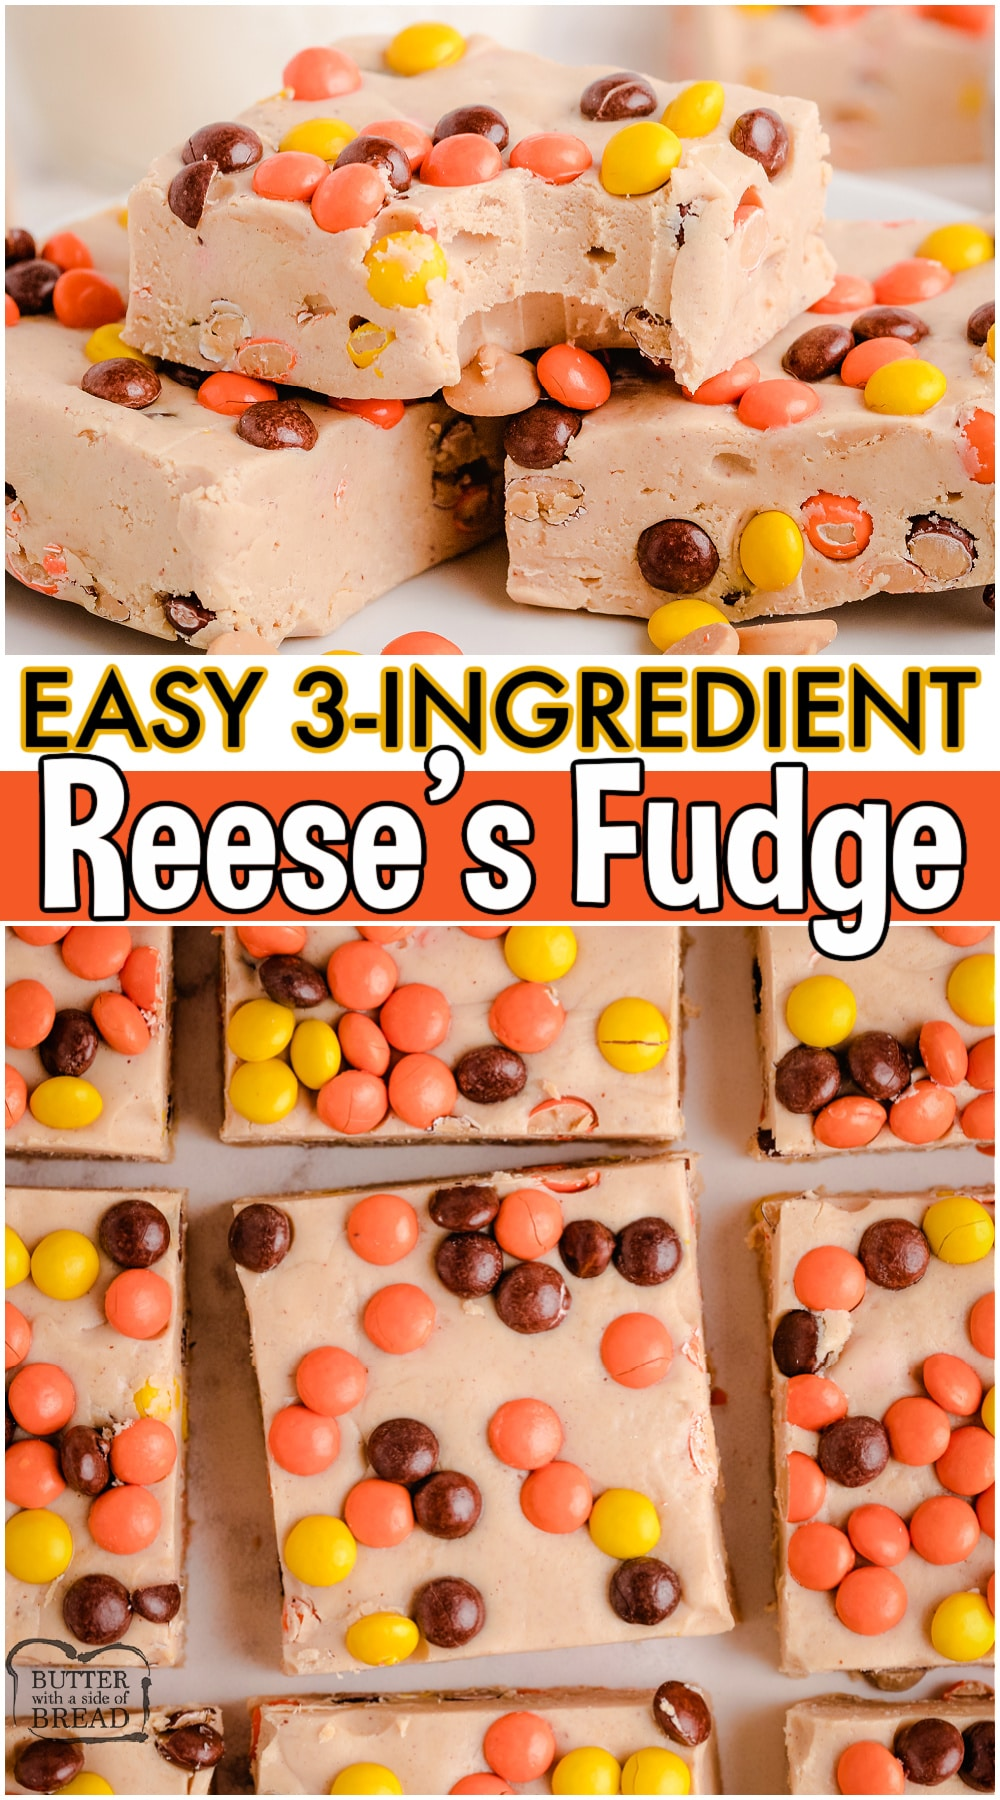 Smooth & creamy Easy Reese's Fudge made with just 3 simple ingredients! Vanilla frosting & peanut butter chips combine for this easy Reese's Pieces Fudge! #fudge #reeses #easyfudge #peanutbutter #candy #easyrecipe from BUTTER WITH A SIDE OF BREAD